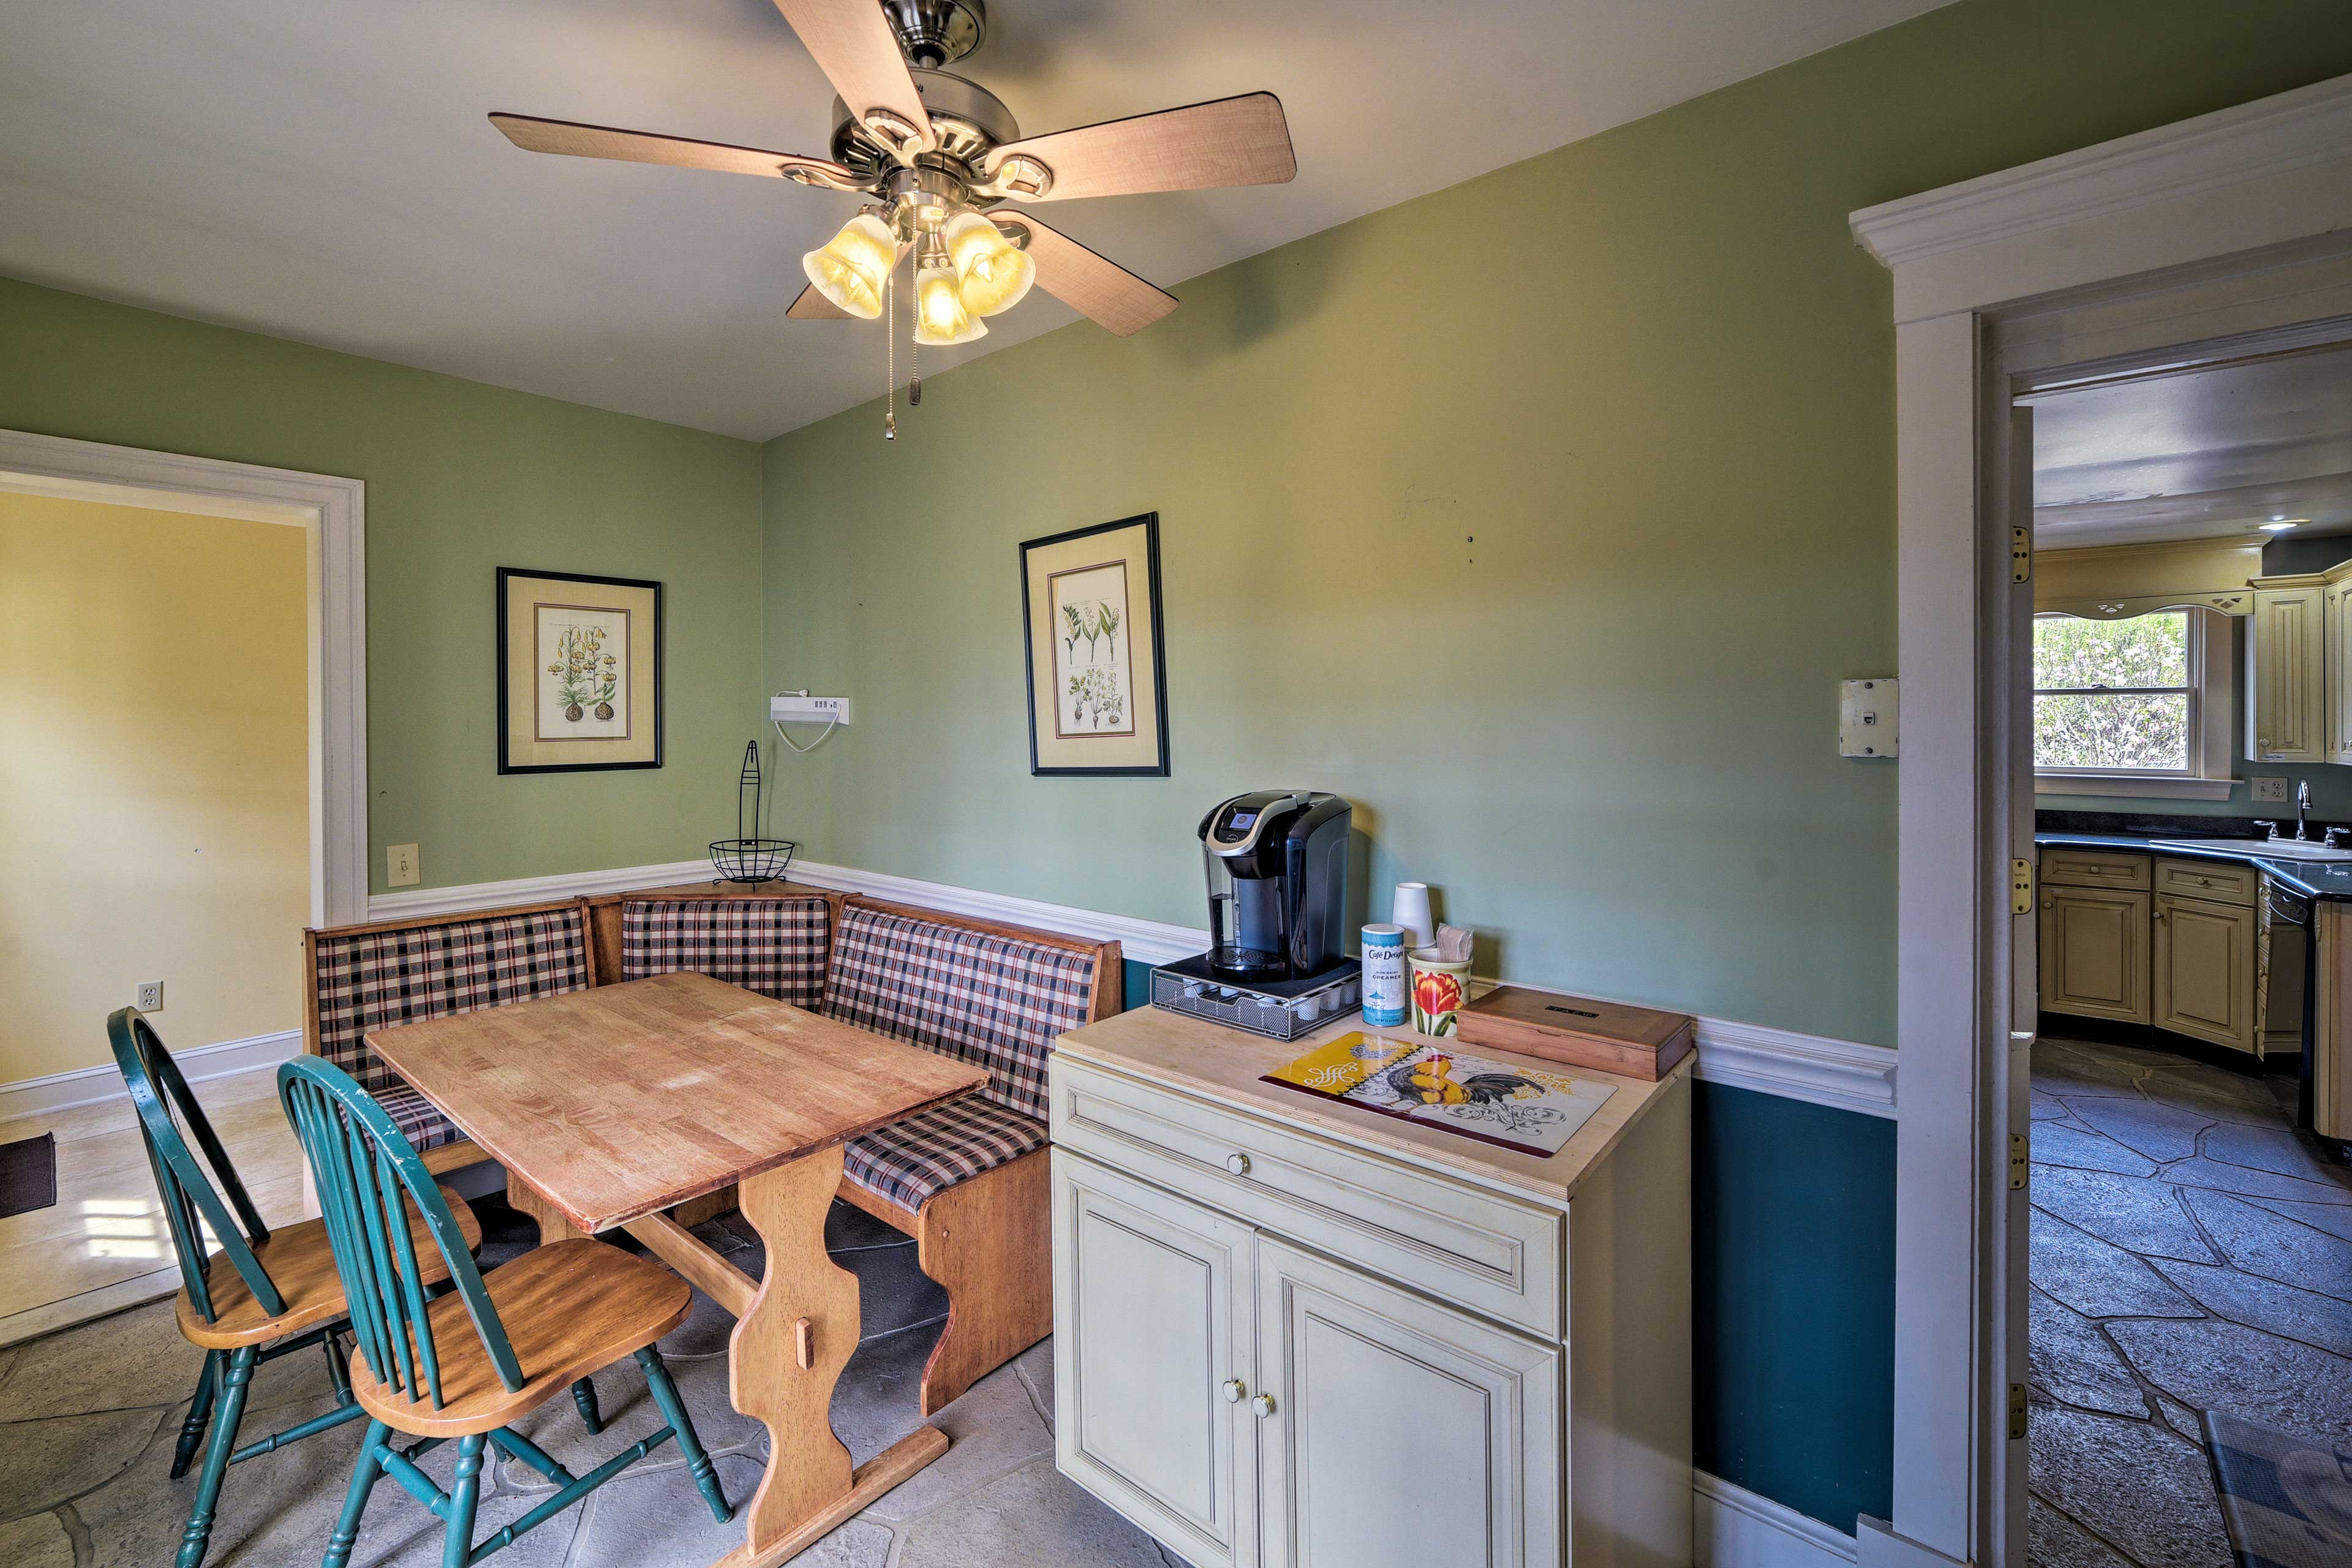 Dining Nook | K Cups Provided